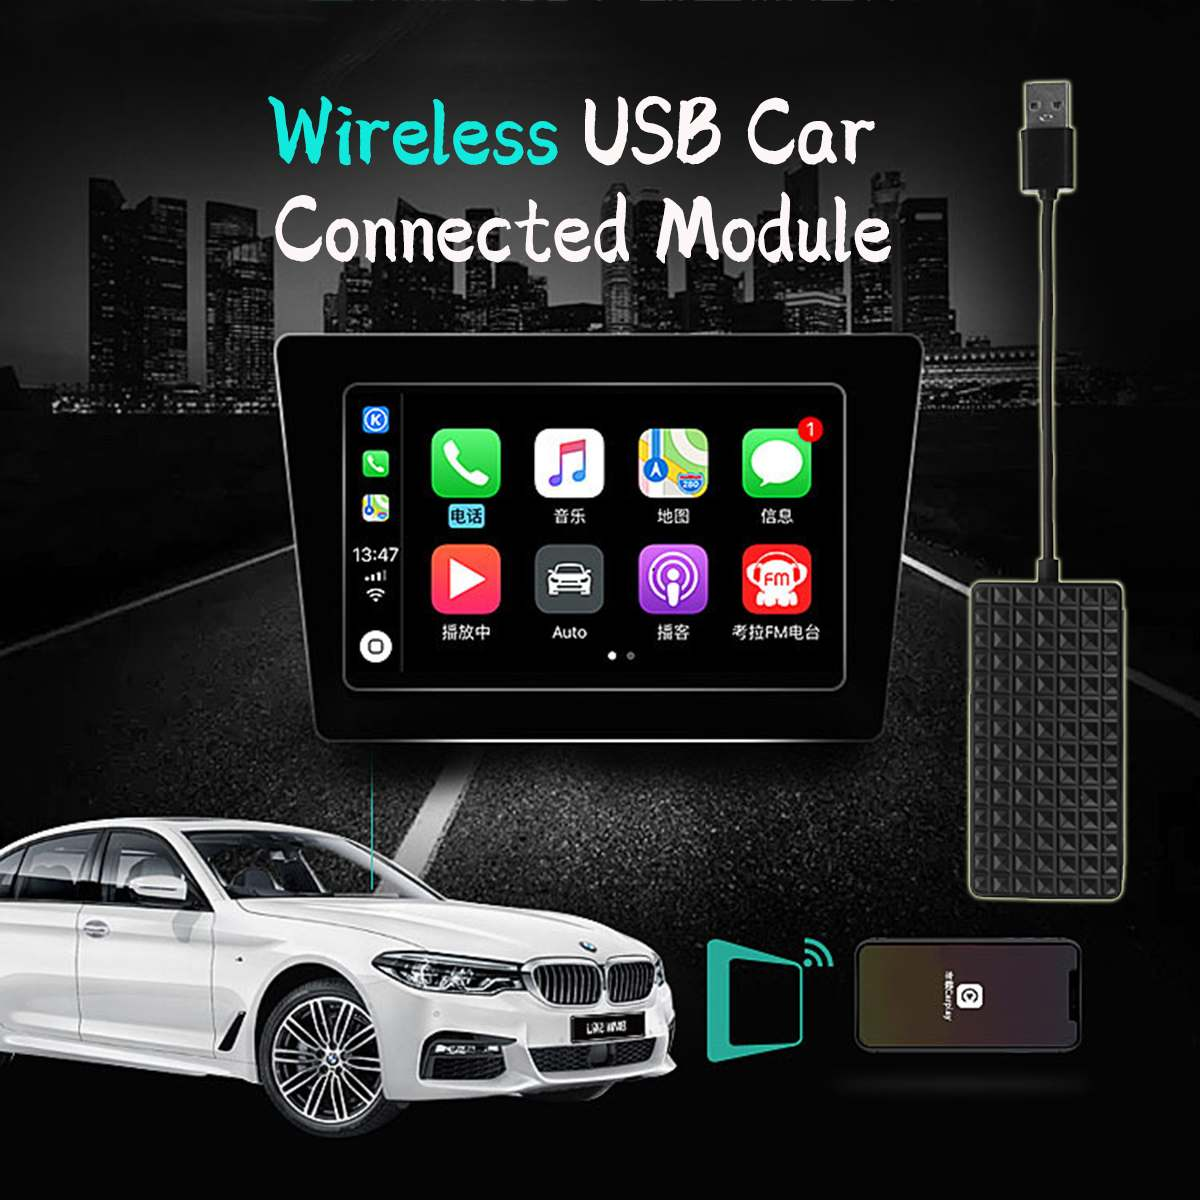 Mini USB Carplay Stick Modules Wireless WiFi USB Dongle Smart Link For Apple CarPlay Dongle For Android Navigation Player